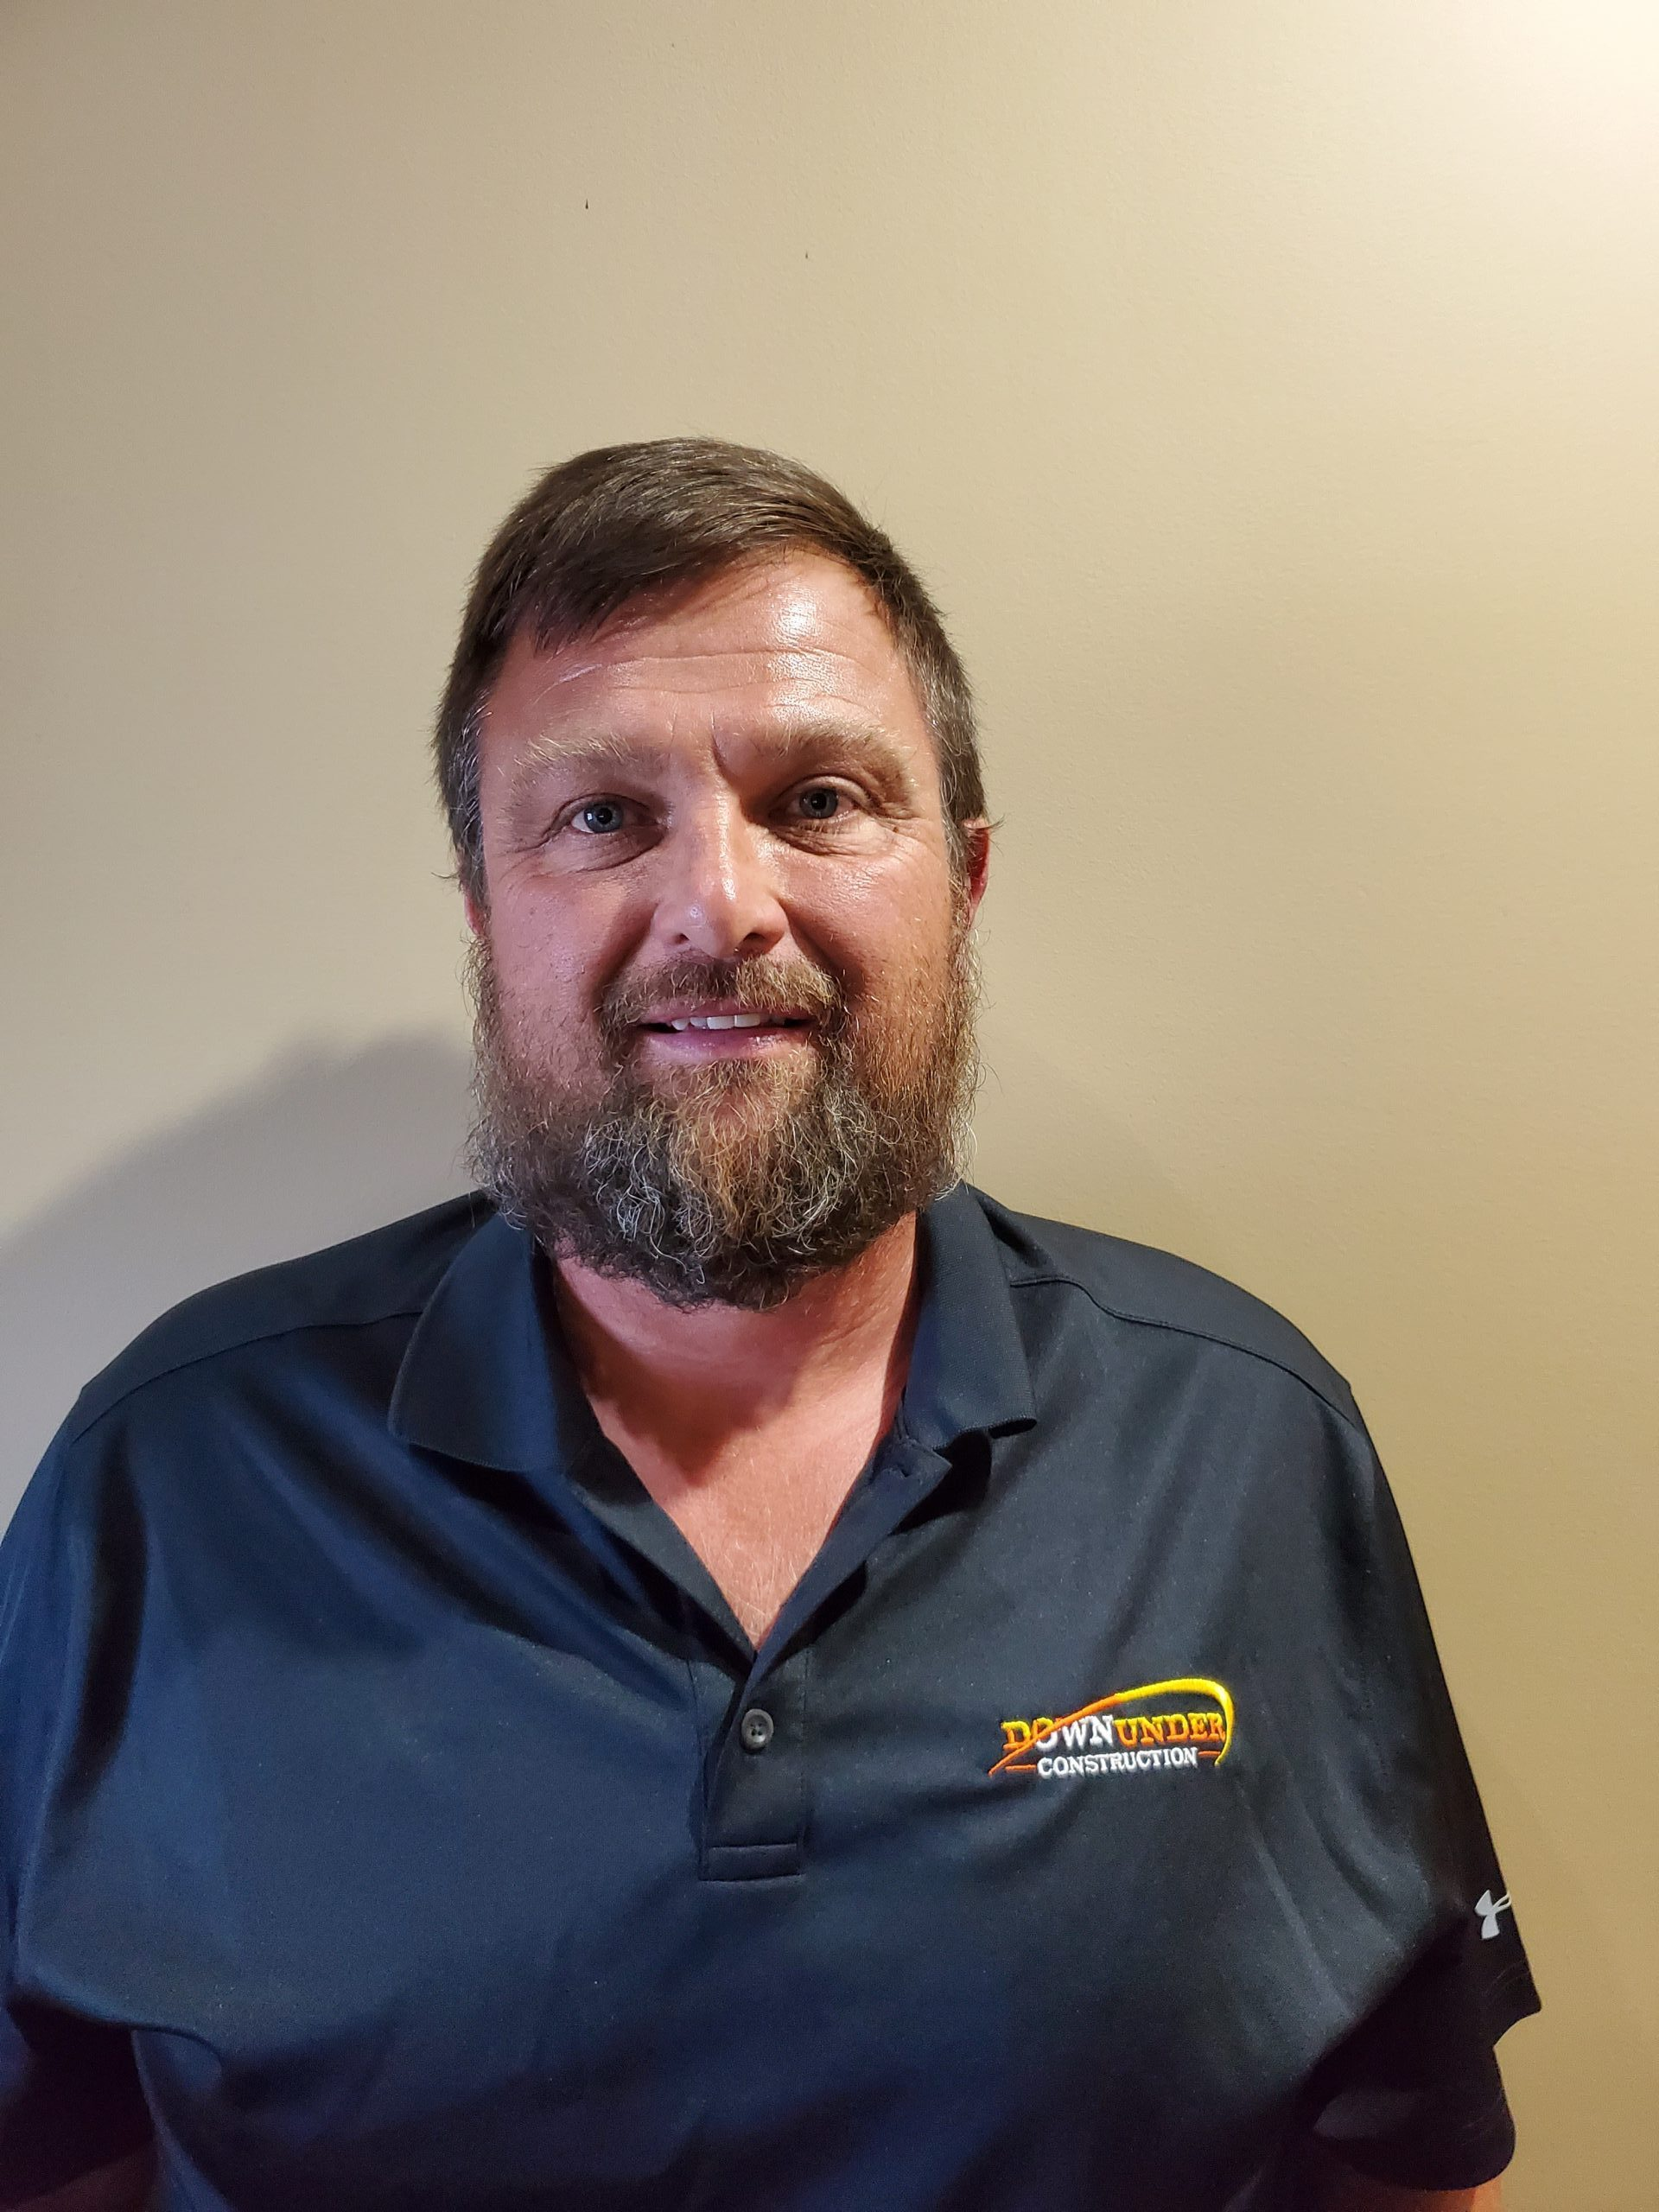 Get to Know Our Hylan Family: Down Under Construction's Troy Clater, Construction Manager